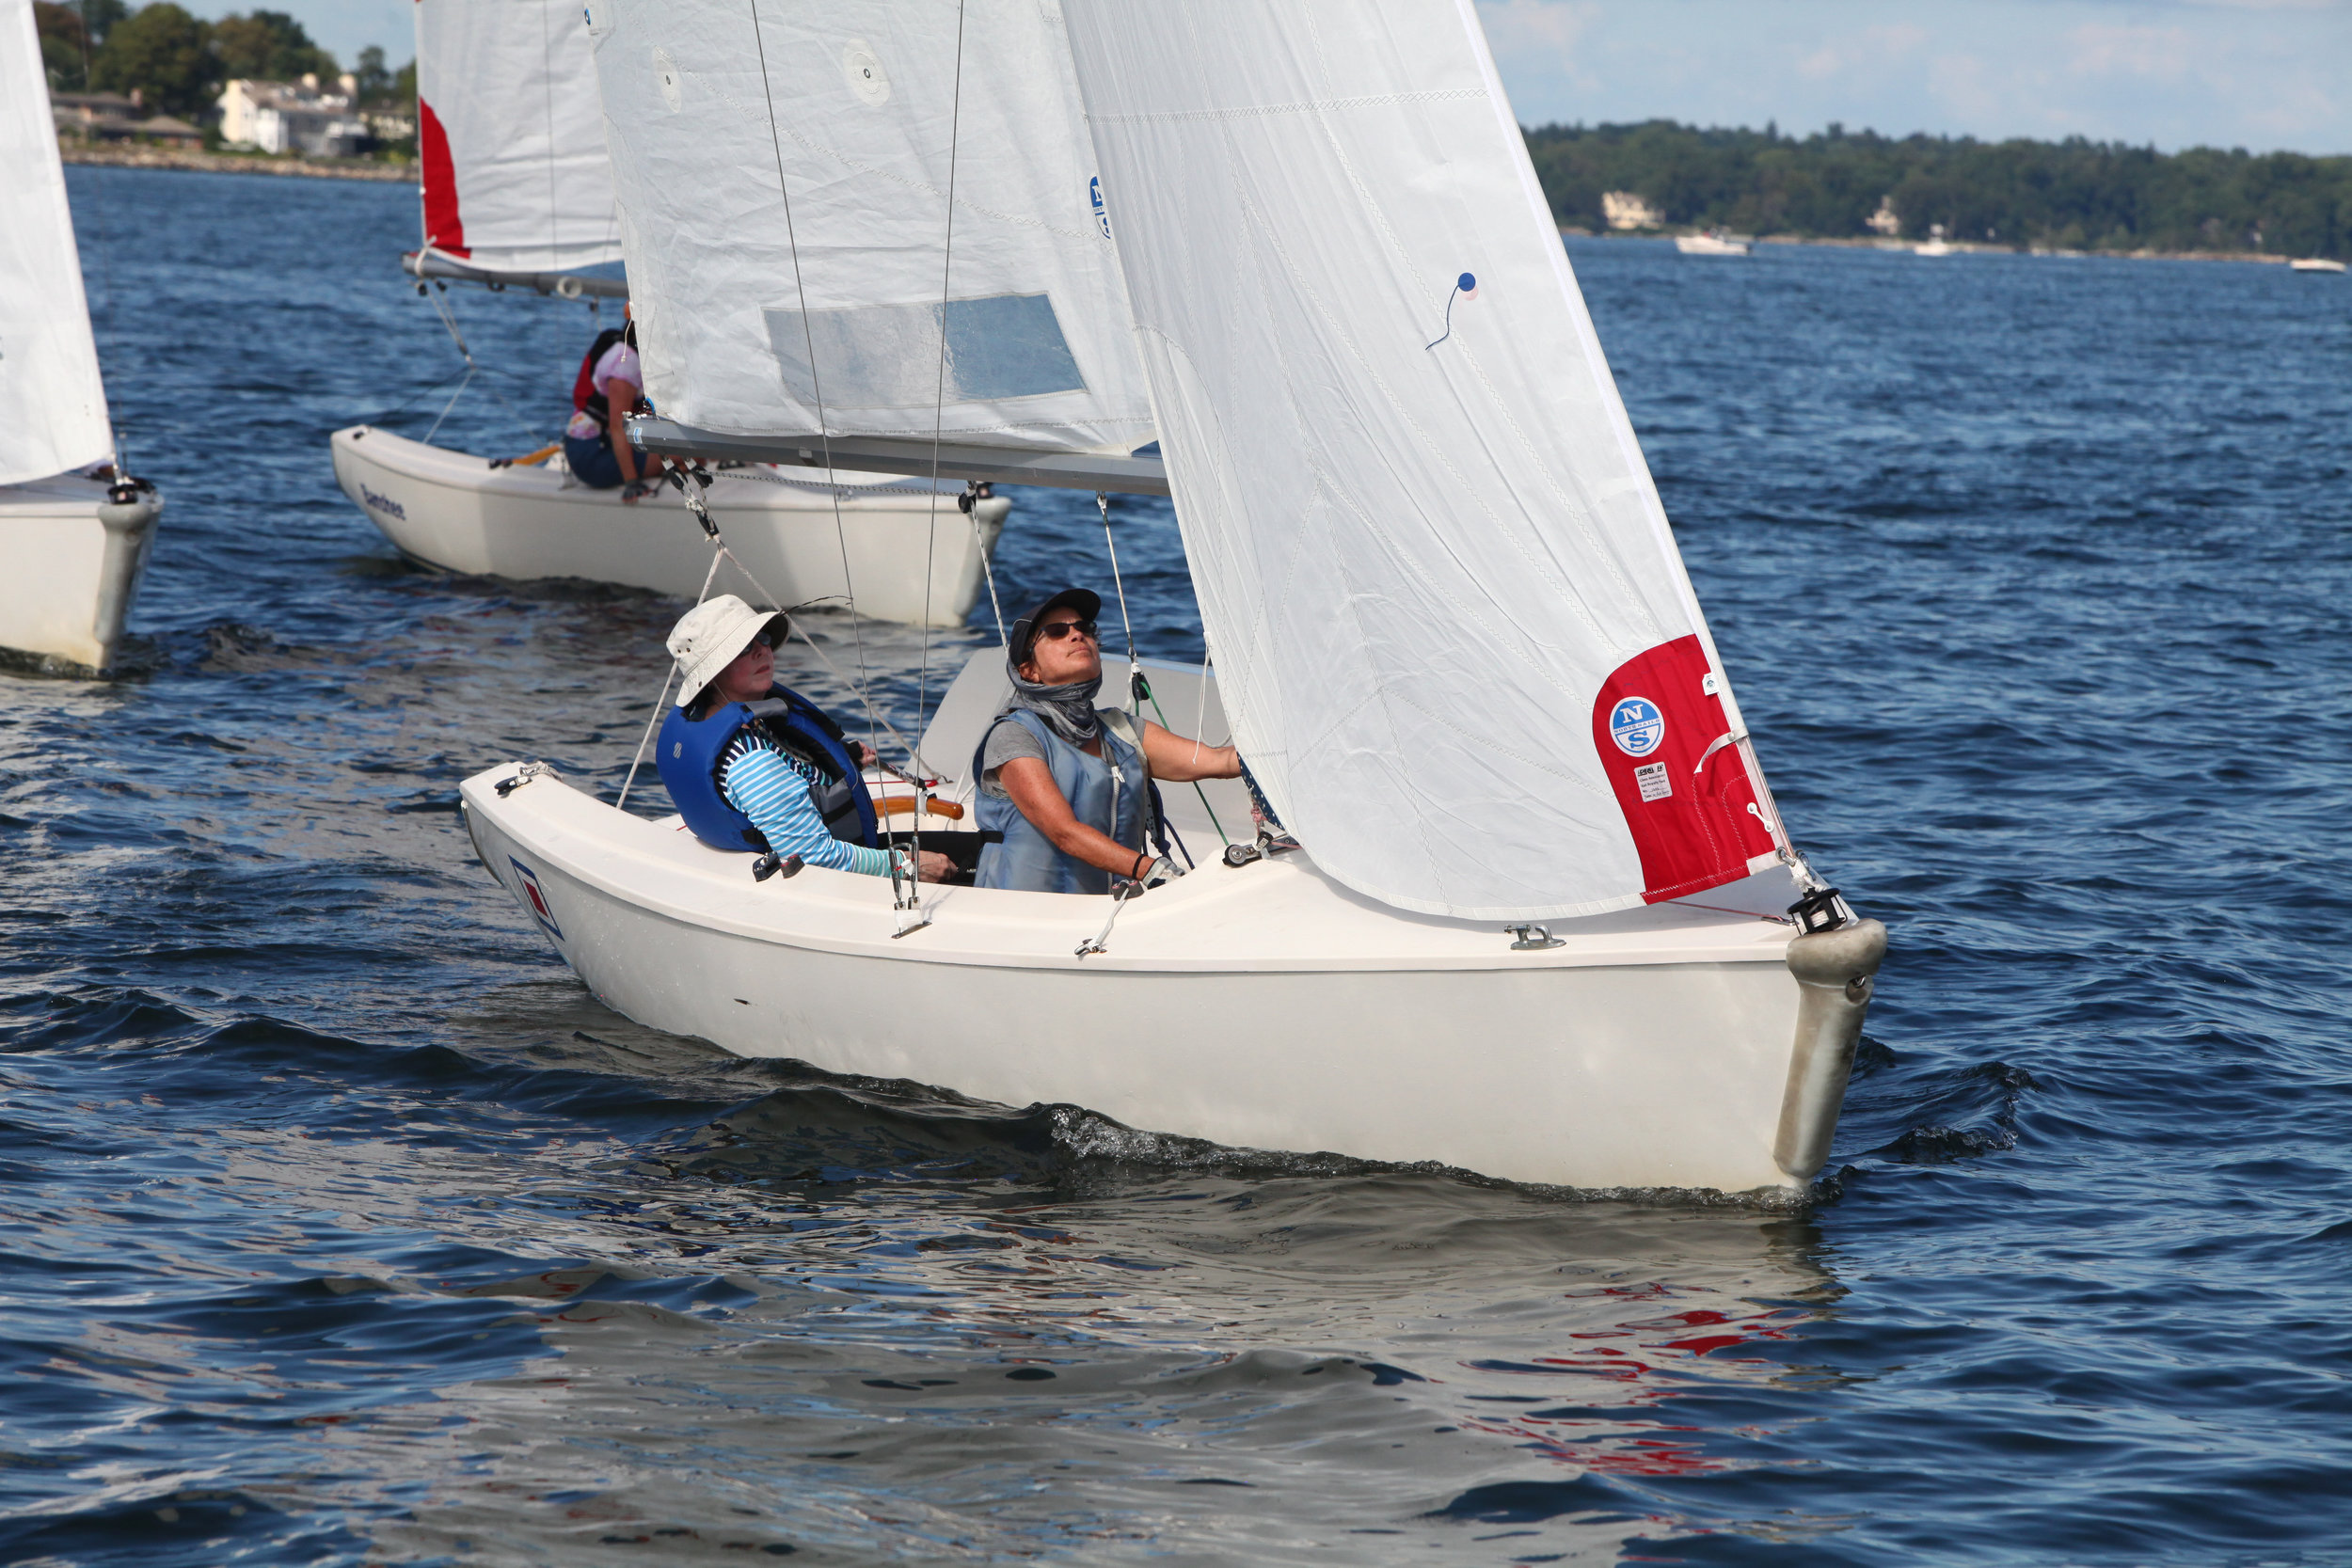 The Mendez 2018 - Held in mid September at Larchmont Yacht Club in Larchmont, NY, this regatta is without spinnakers.